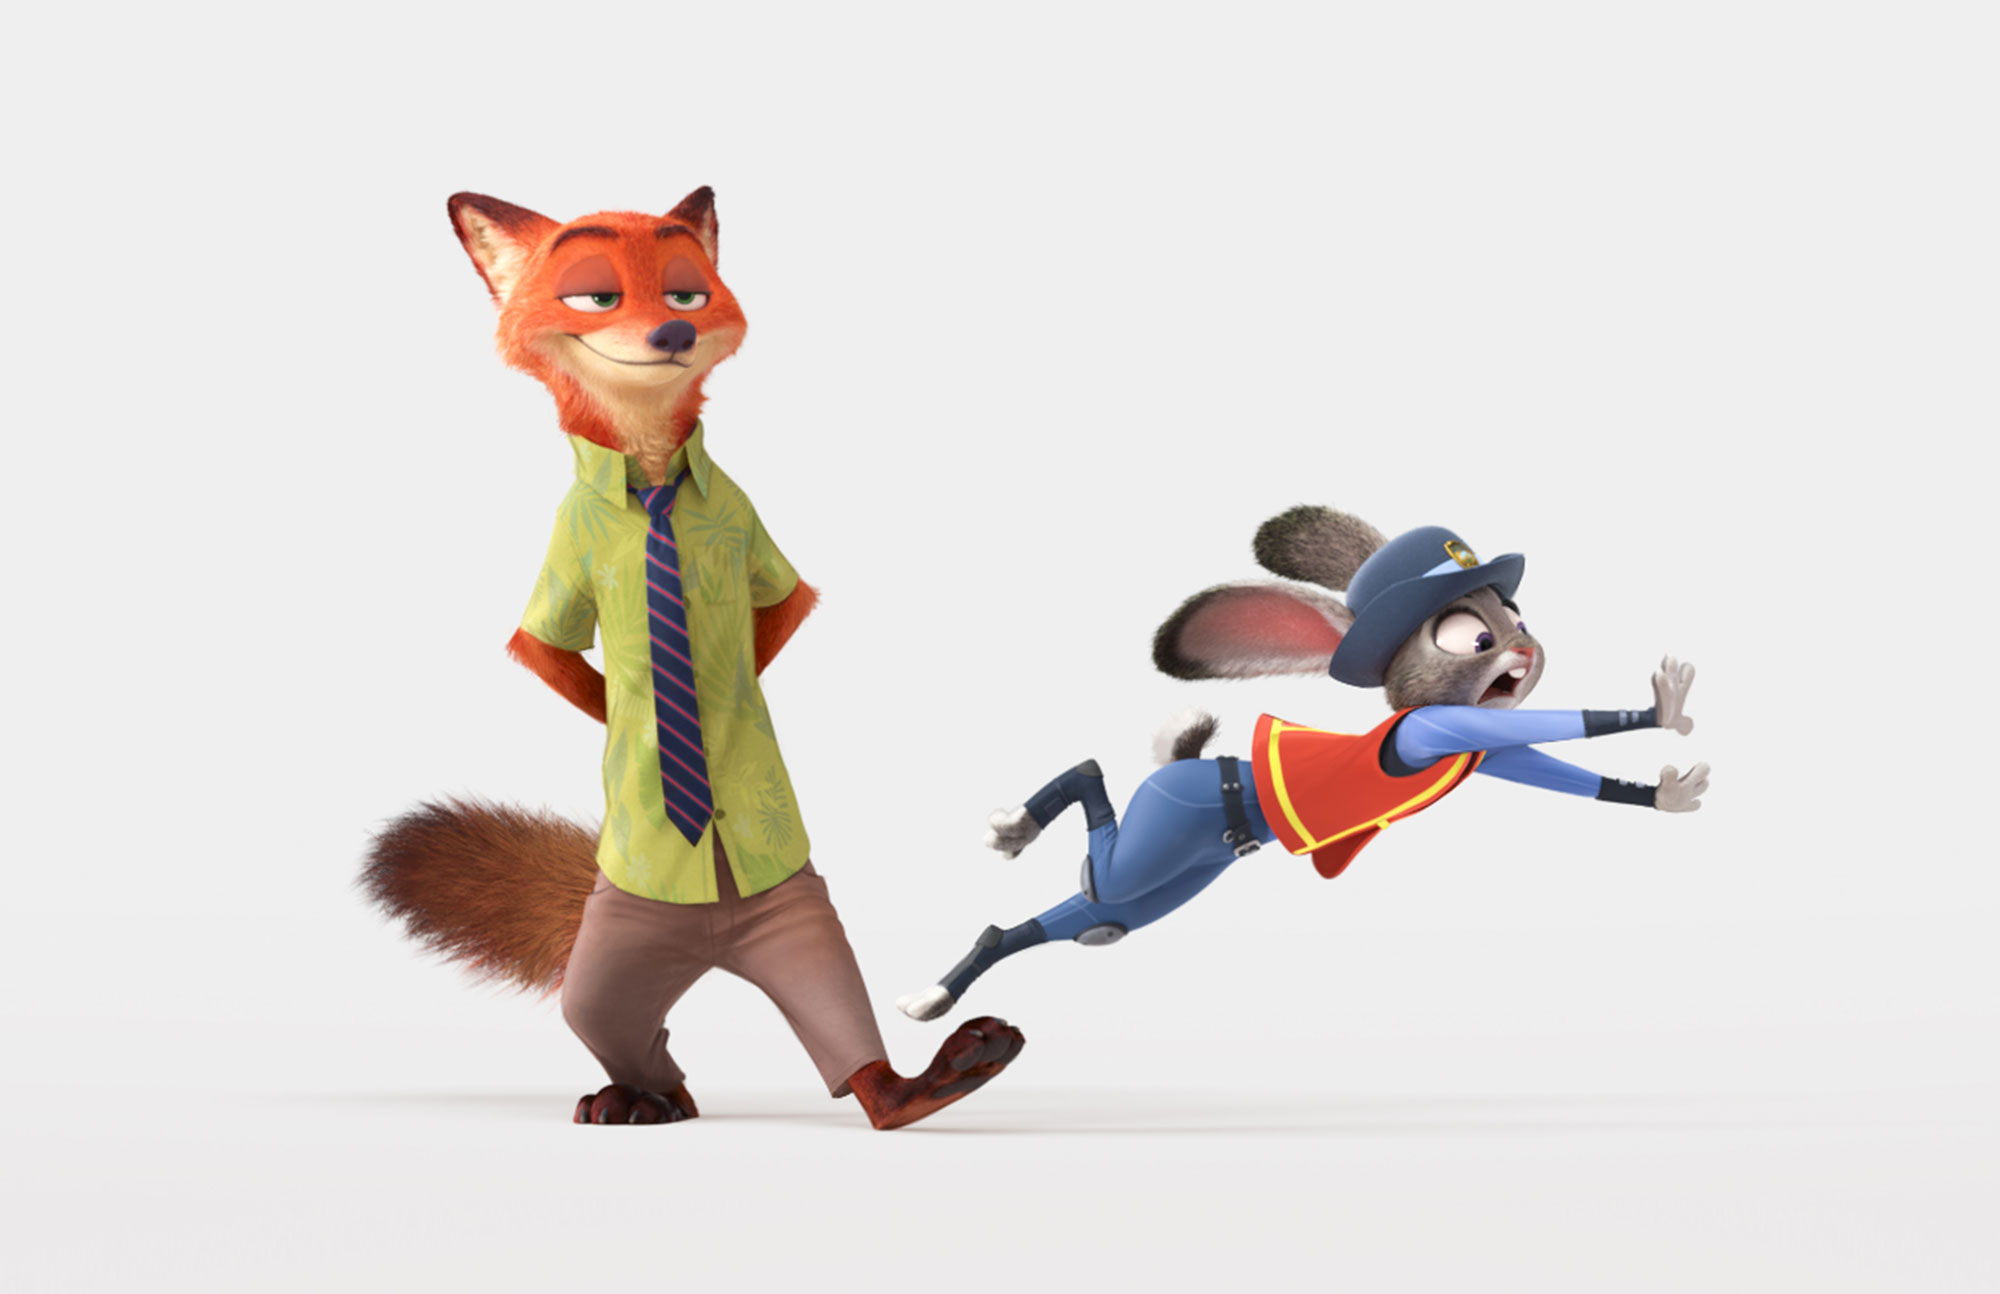 Zootopia: Much More Than Cute Fuzzy Animals – Mr. DAPs Review